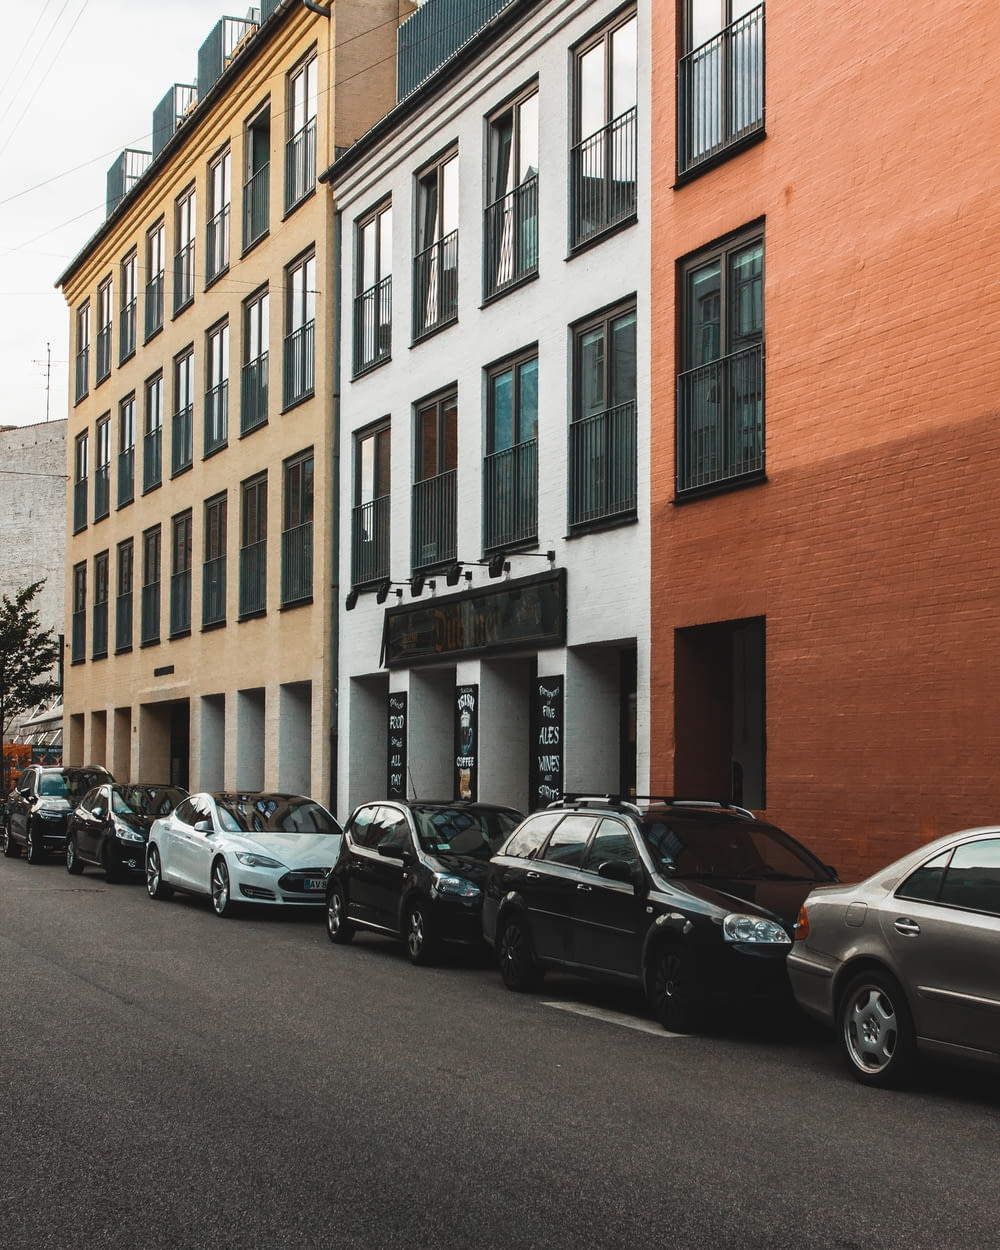 car lot parked beside buildings during daytime